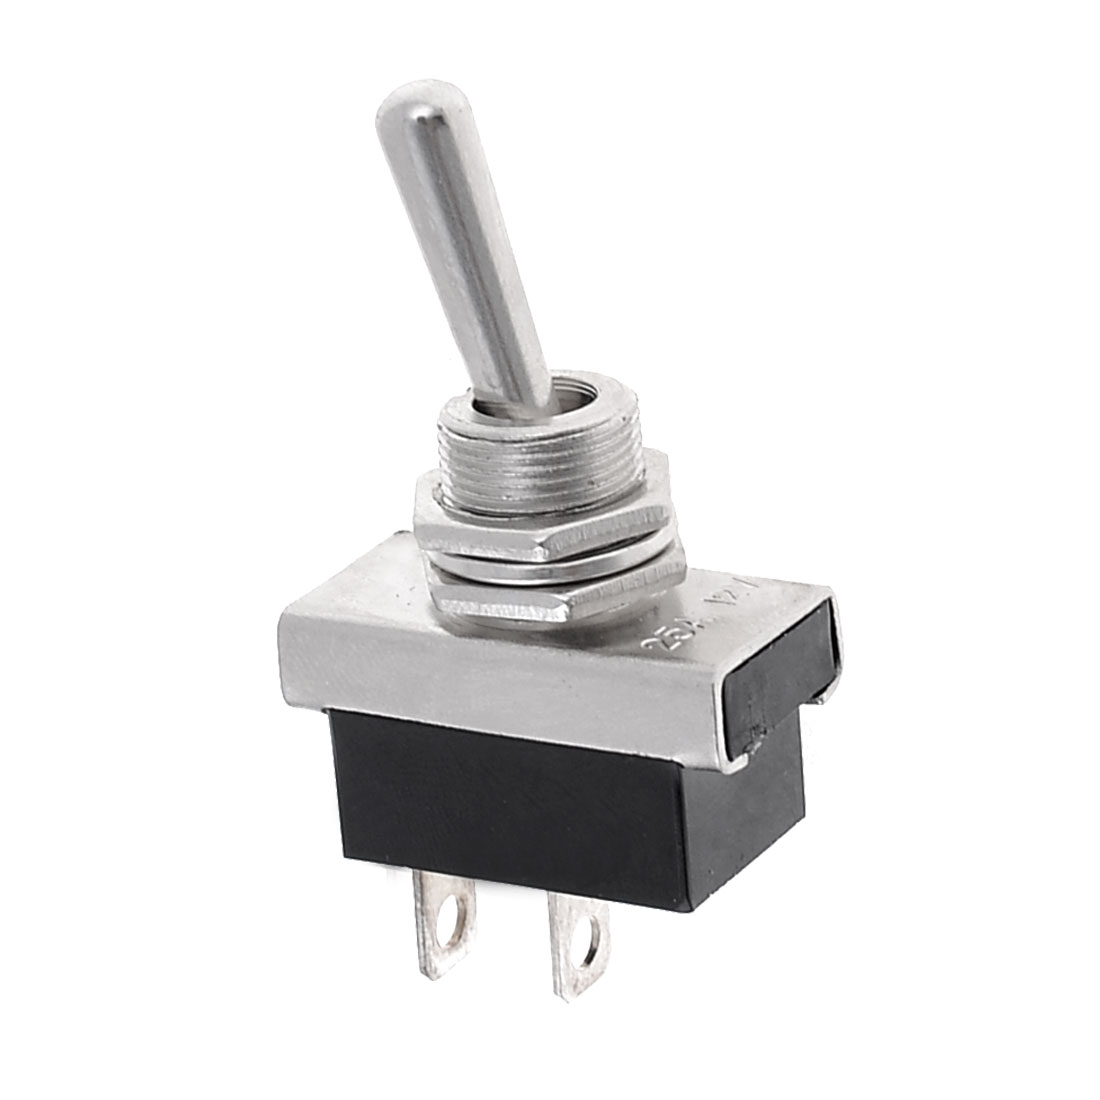 Auto Car SPST ON-OFF Type Toggle Switch DC 12V 25A